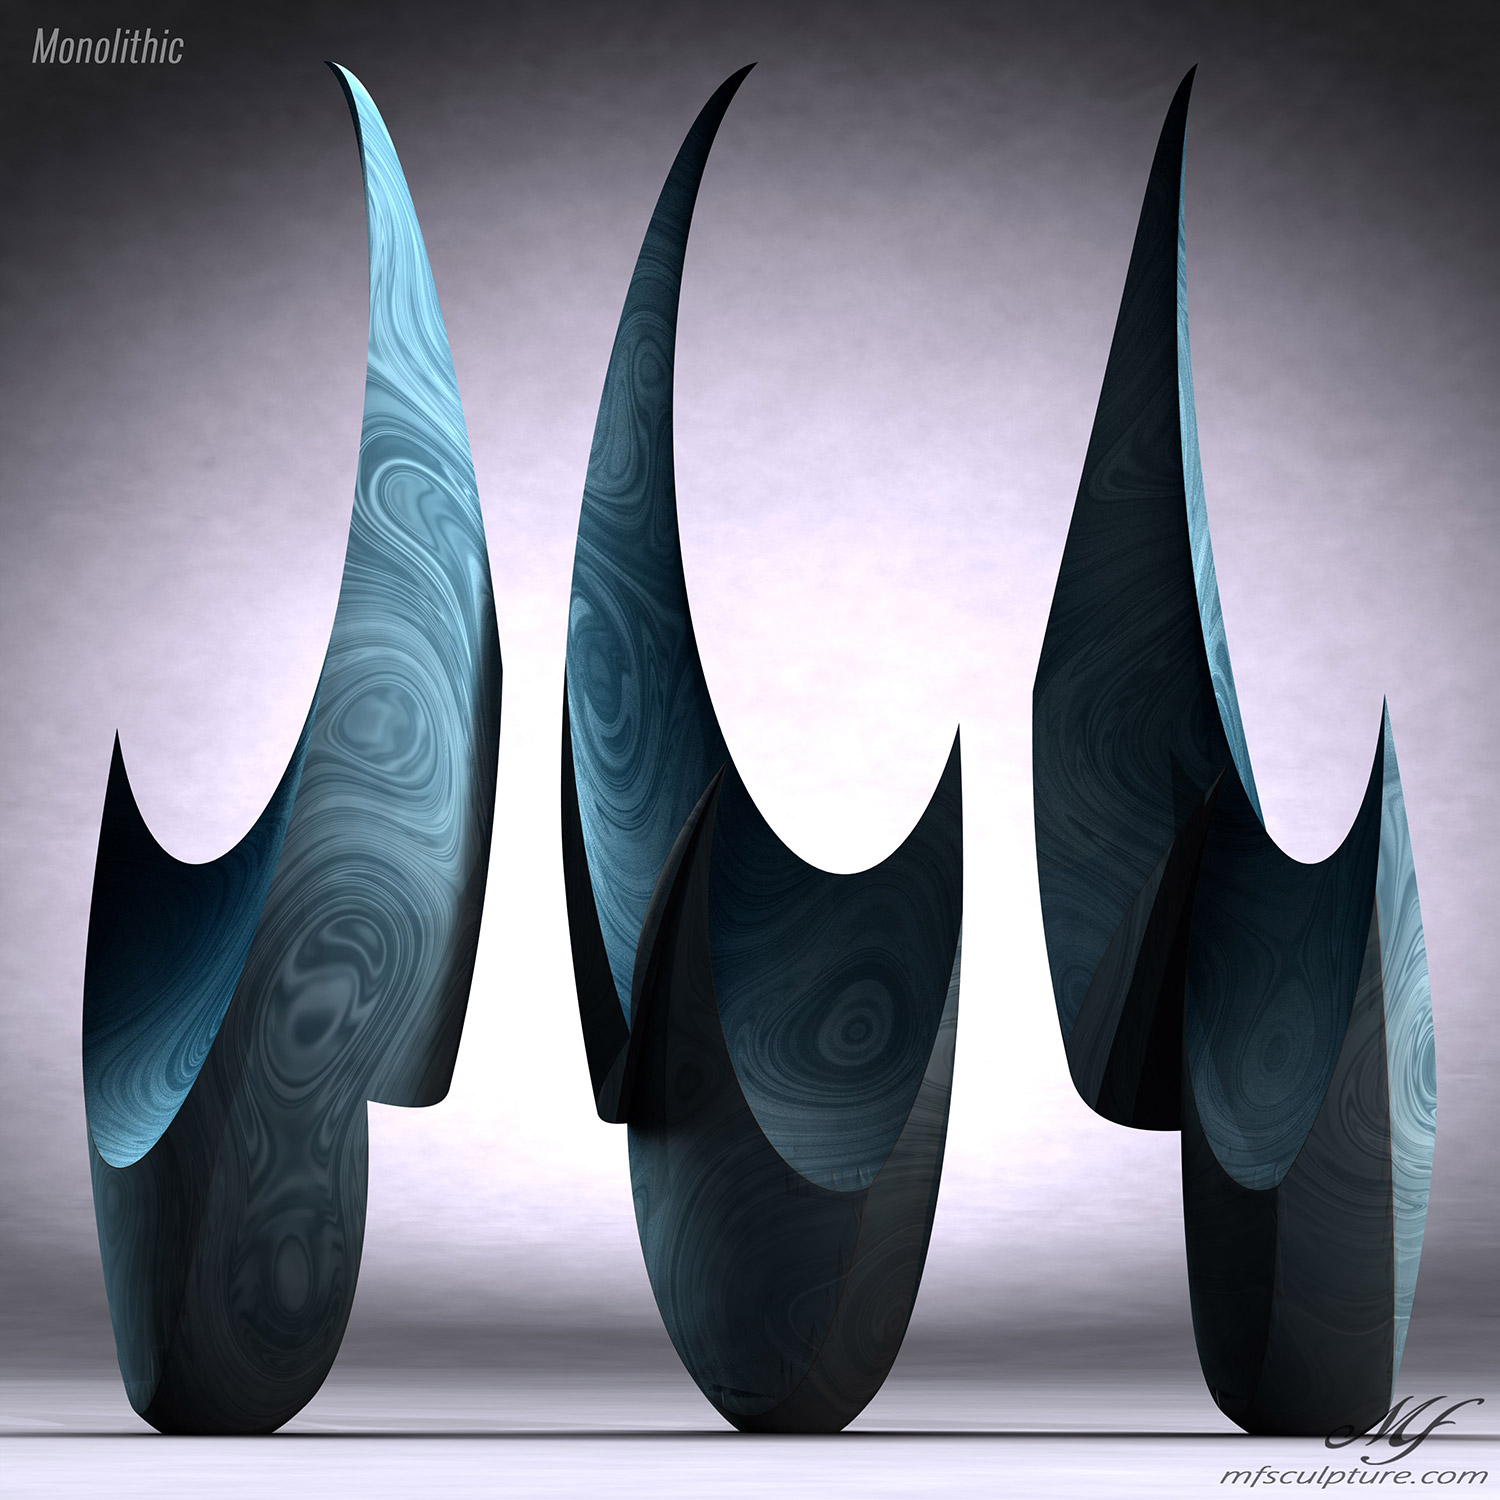 Monolithic Abstract Contemporary Sculpture Mike Fields 3